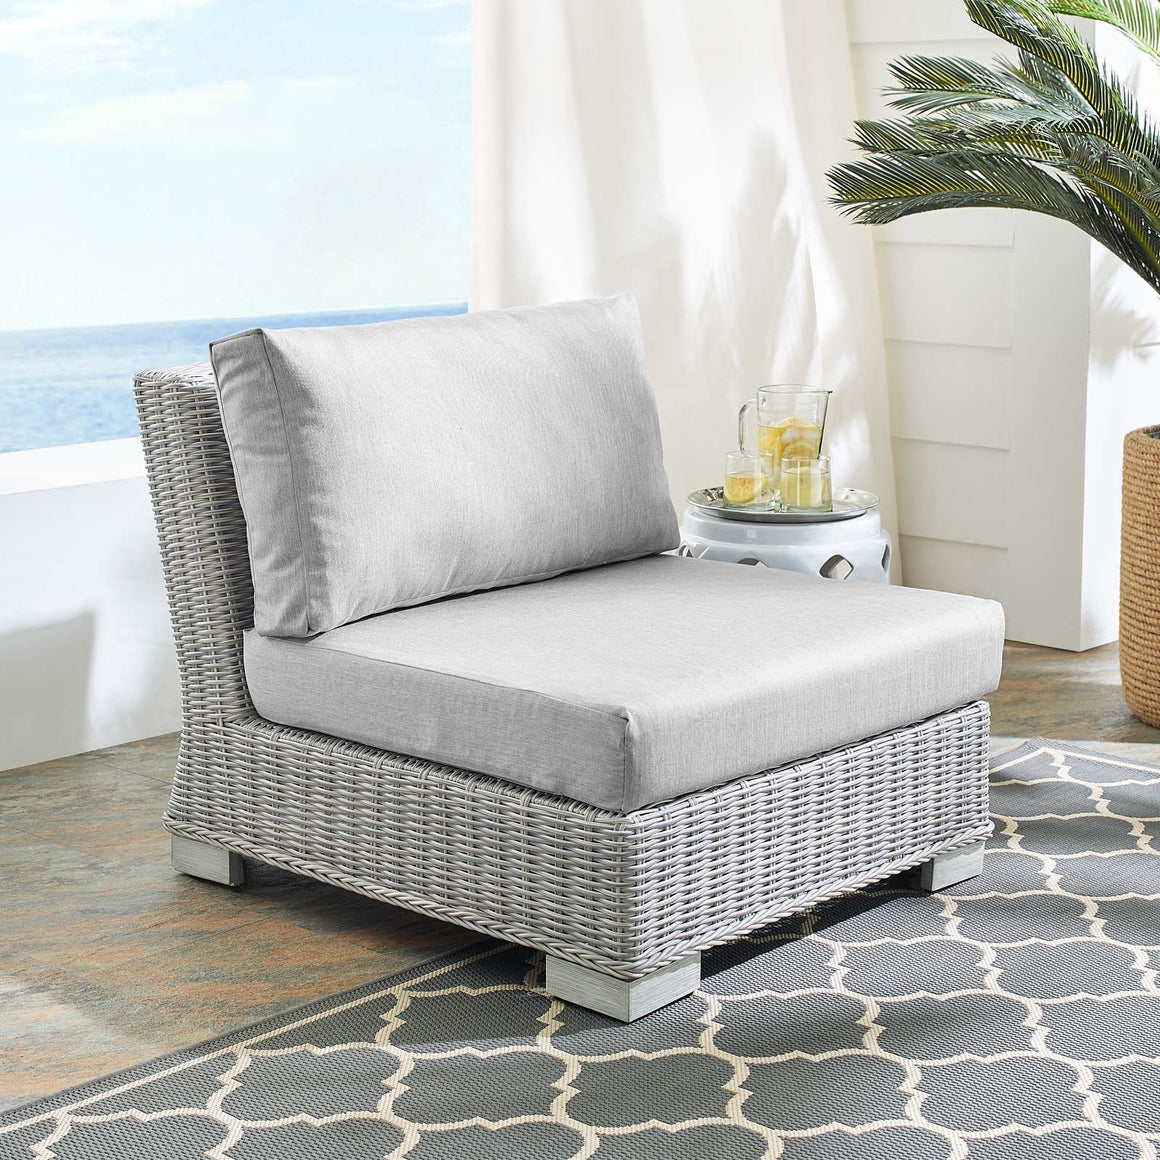 Conway Sunbrella® Outdoor Patio Wicker Rattan Armless Chair in Gray